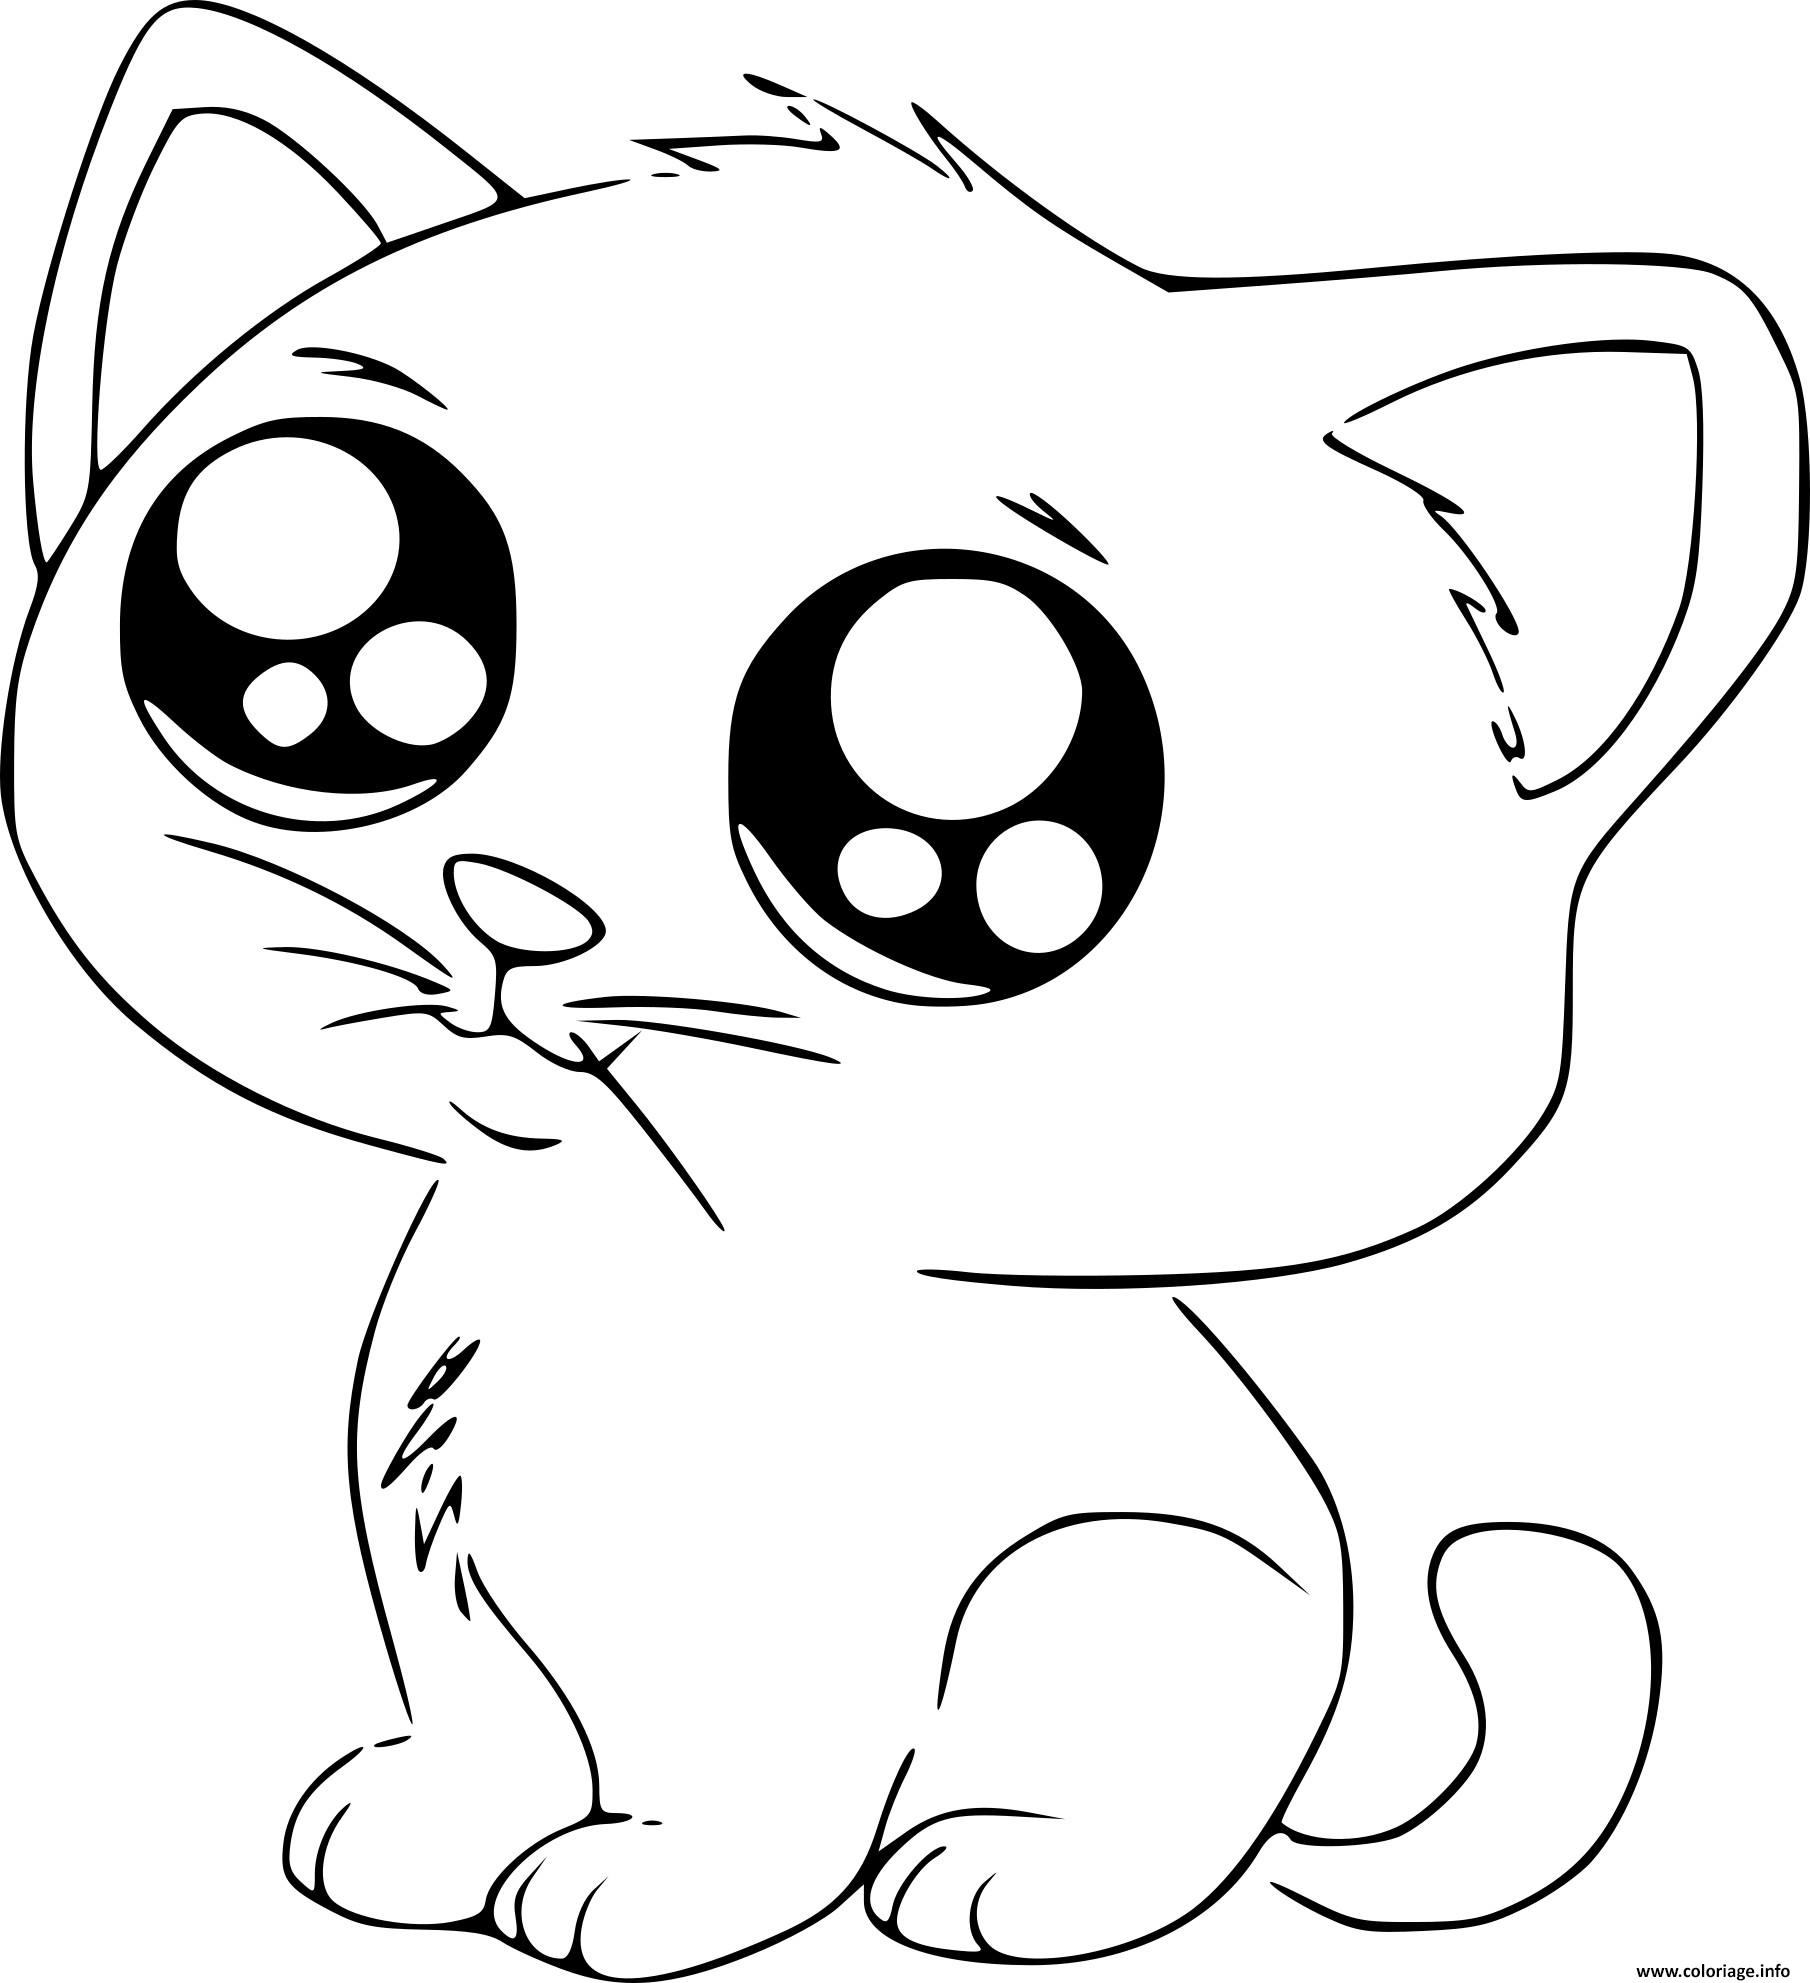 Coloriage chat manga cute mignon - Coloriage de chat ...